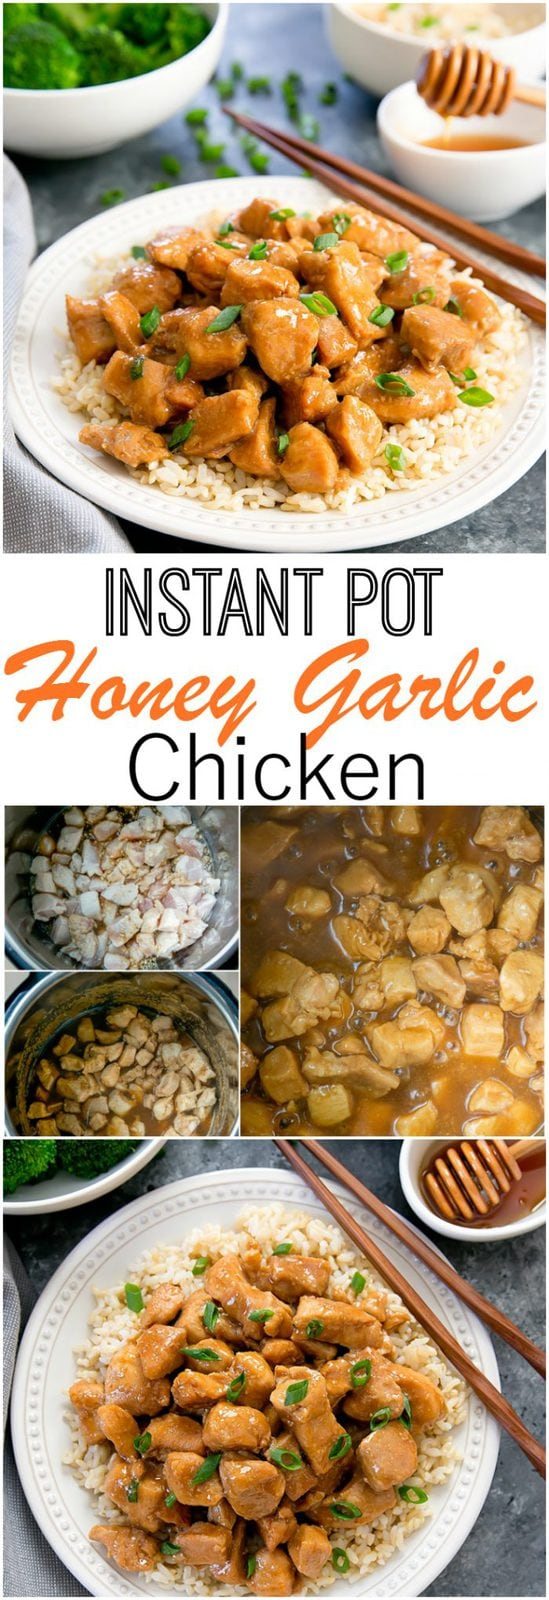 Easy Instant Pot Honey Garlic Chicken